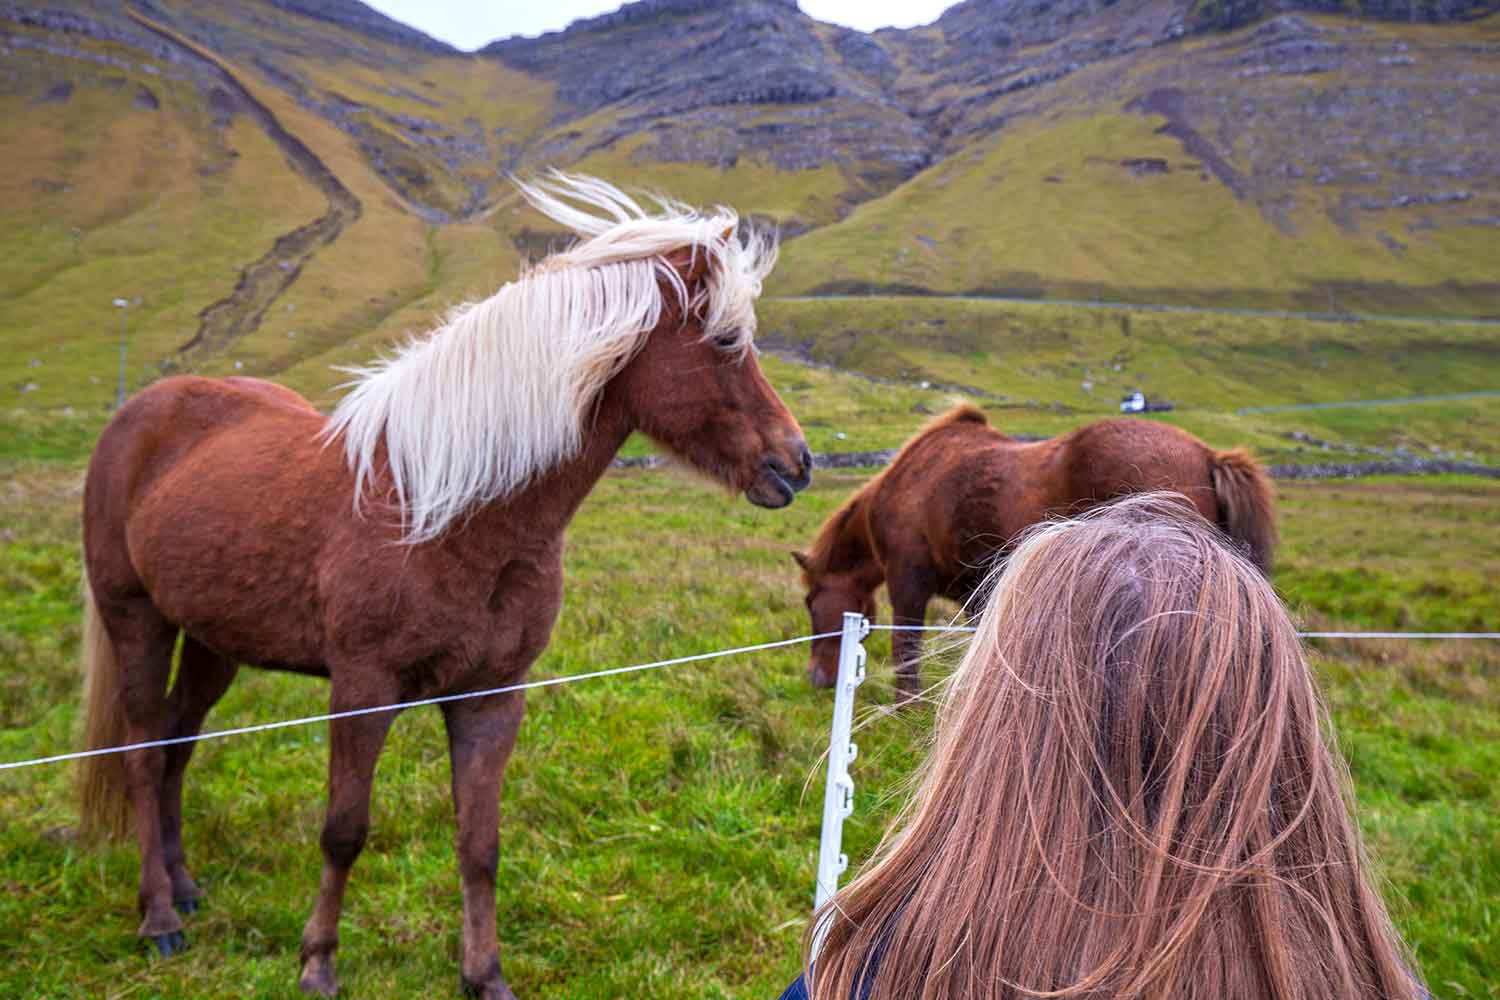 This Faroese horse was so BEAUTIFUL.